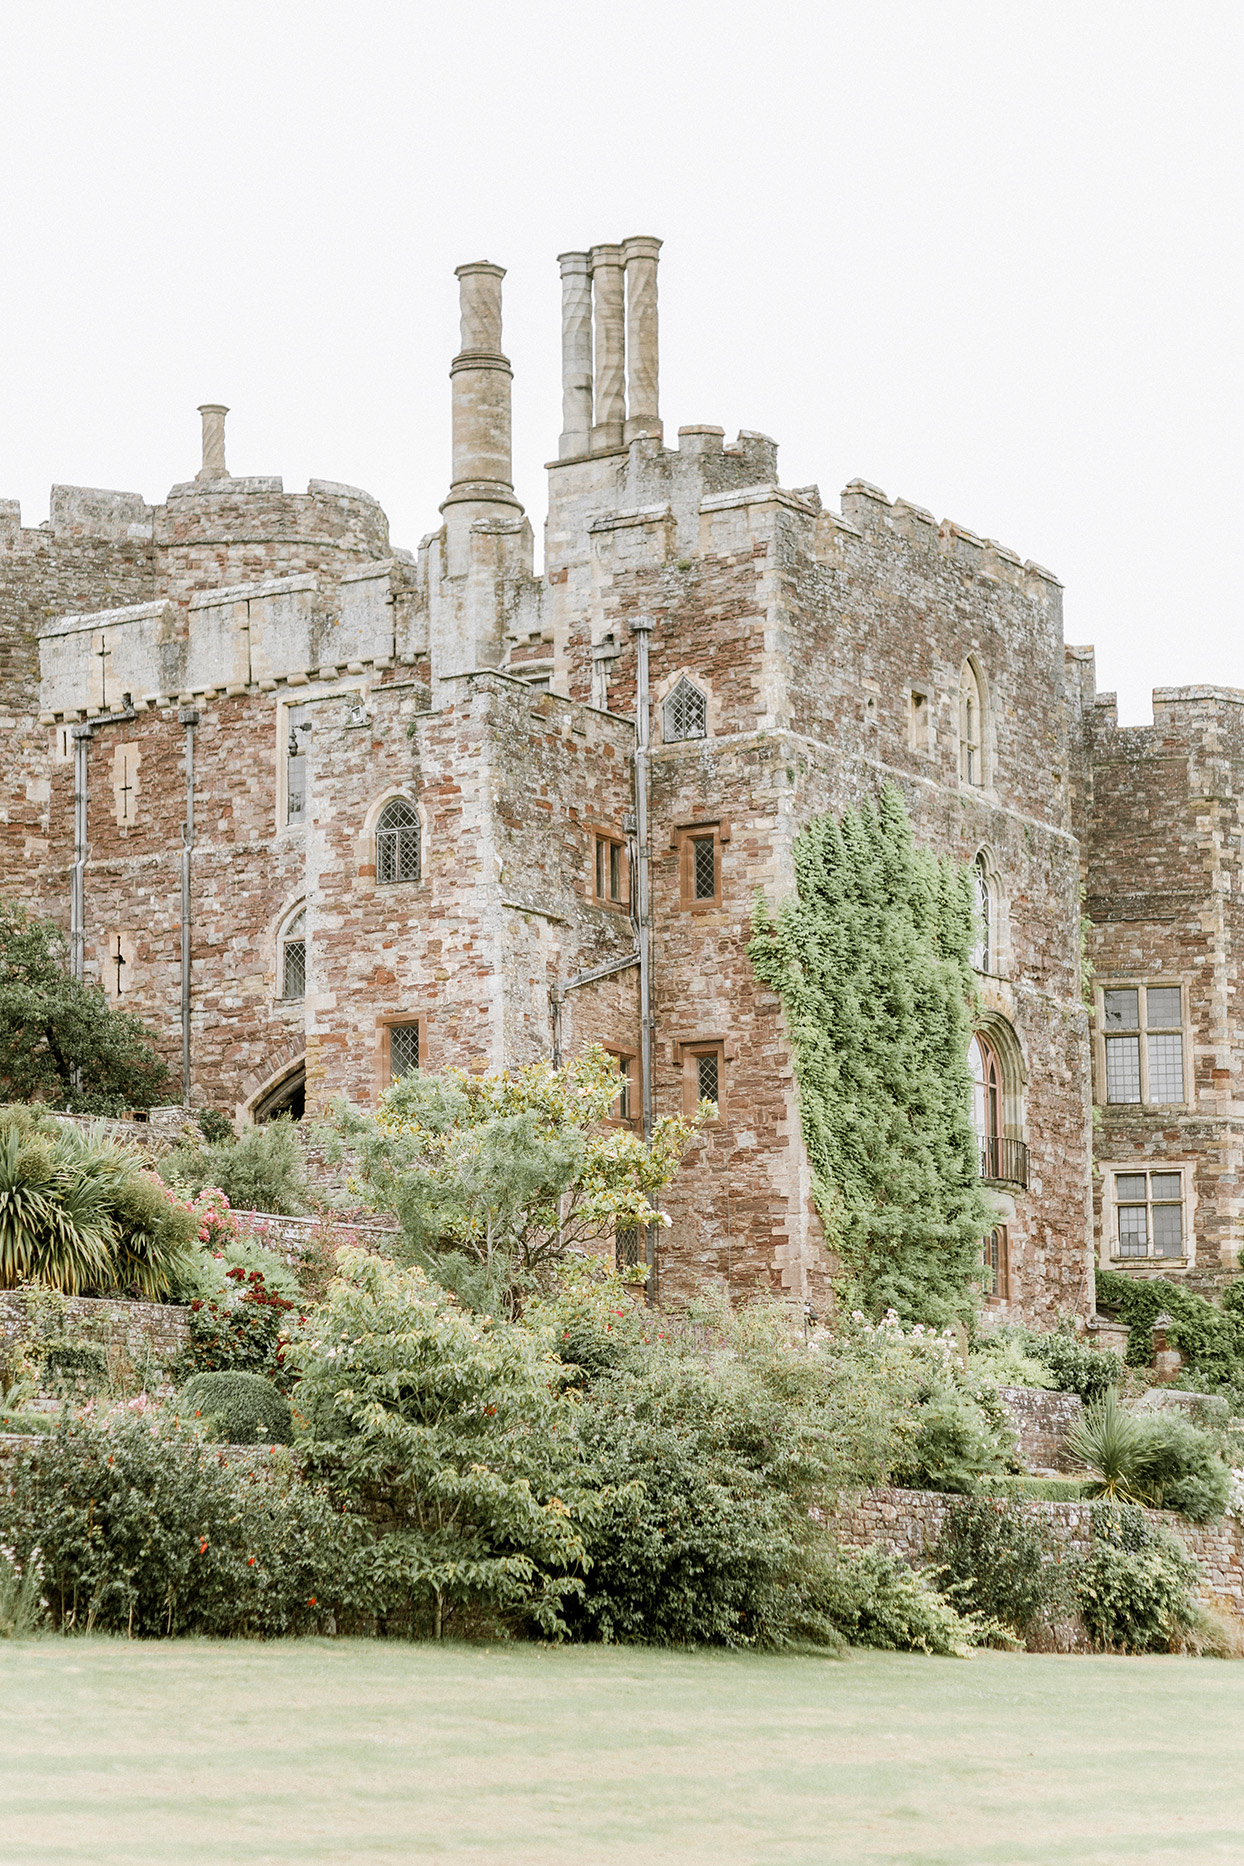 wedding stone castle venue positioned in trees